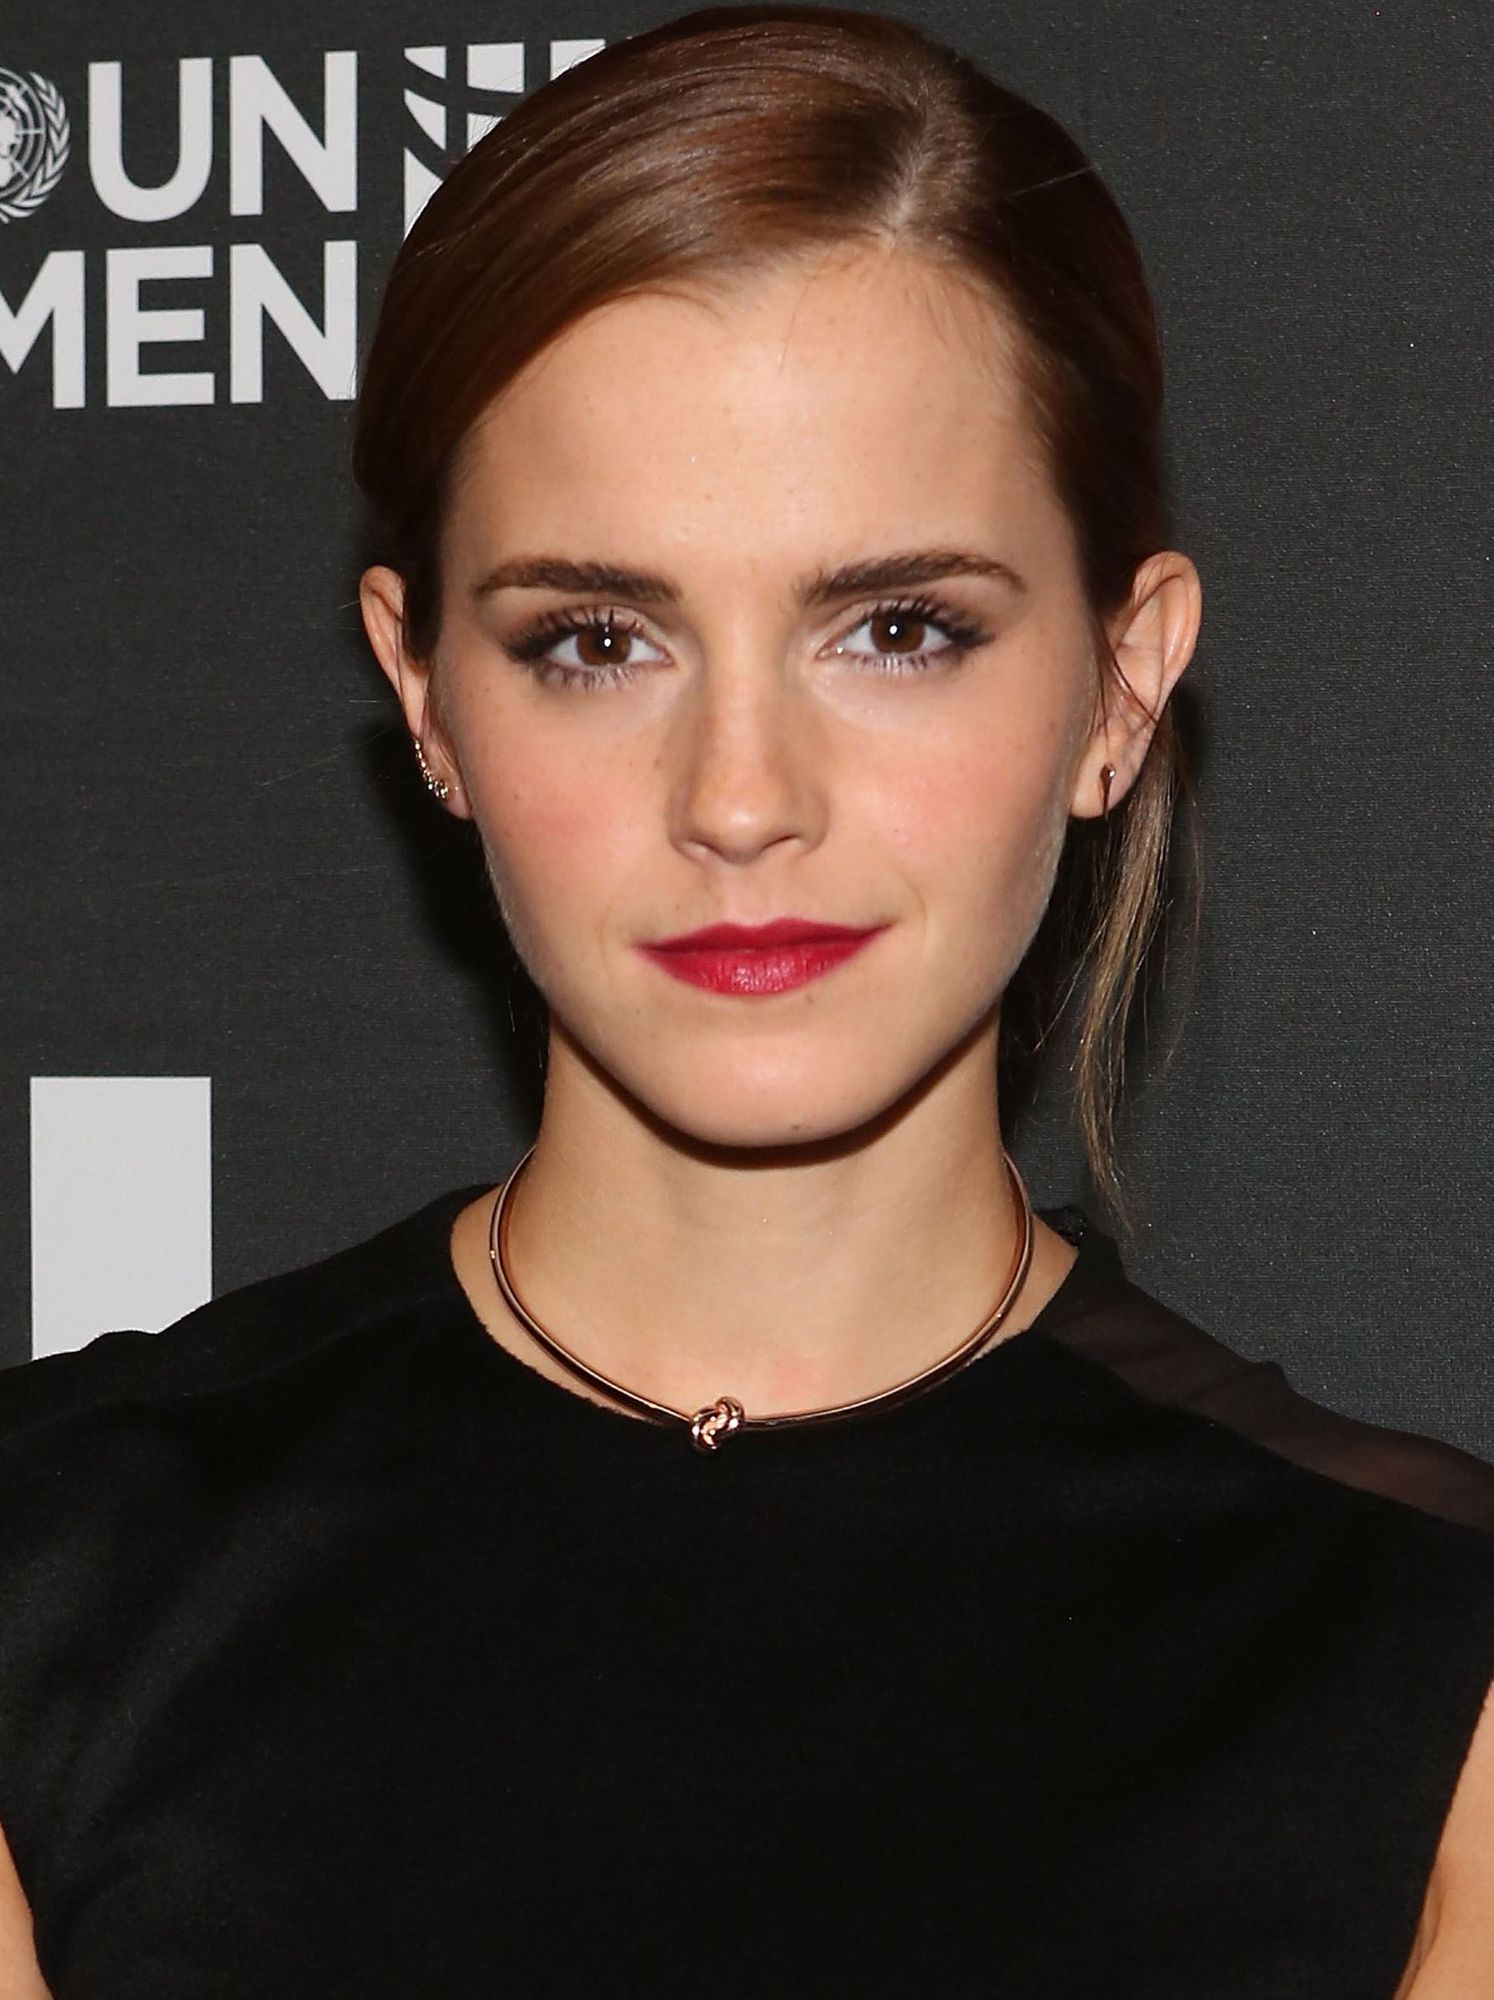 emma watson | the perks of being a wallflower wiki | fandom powered